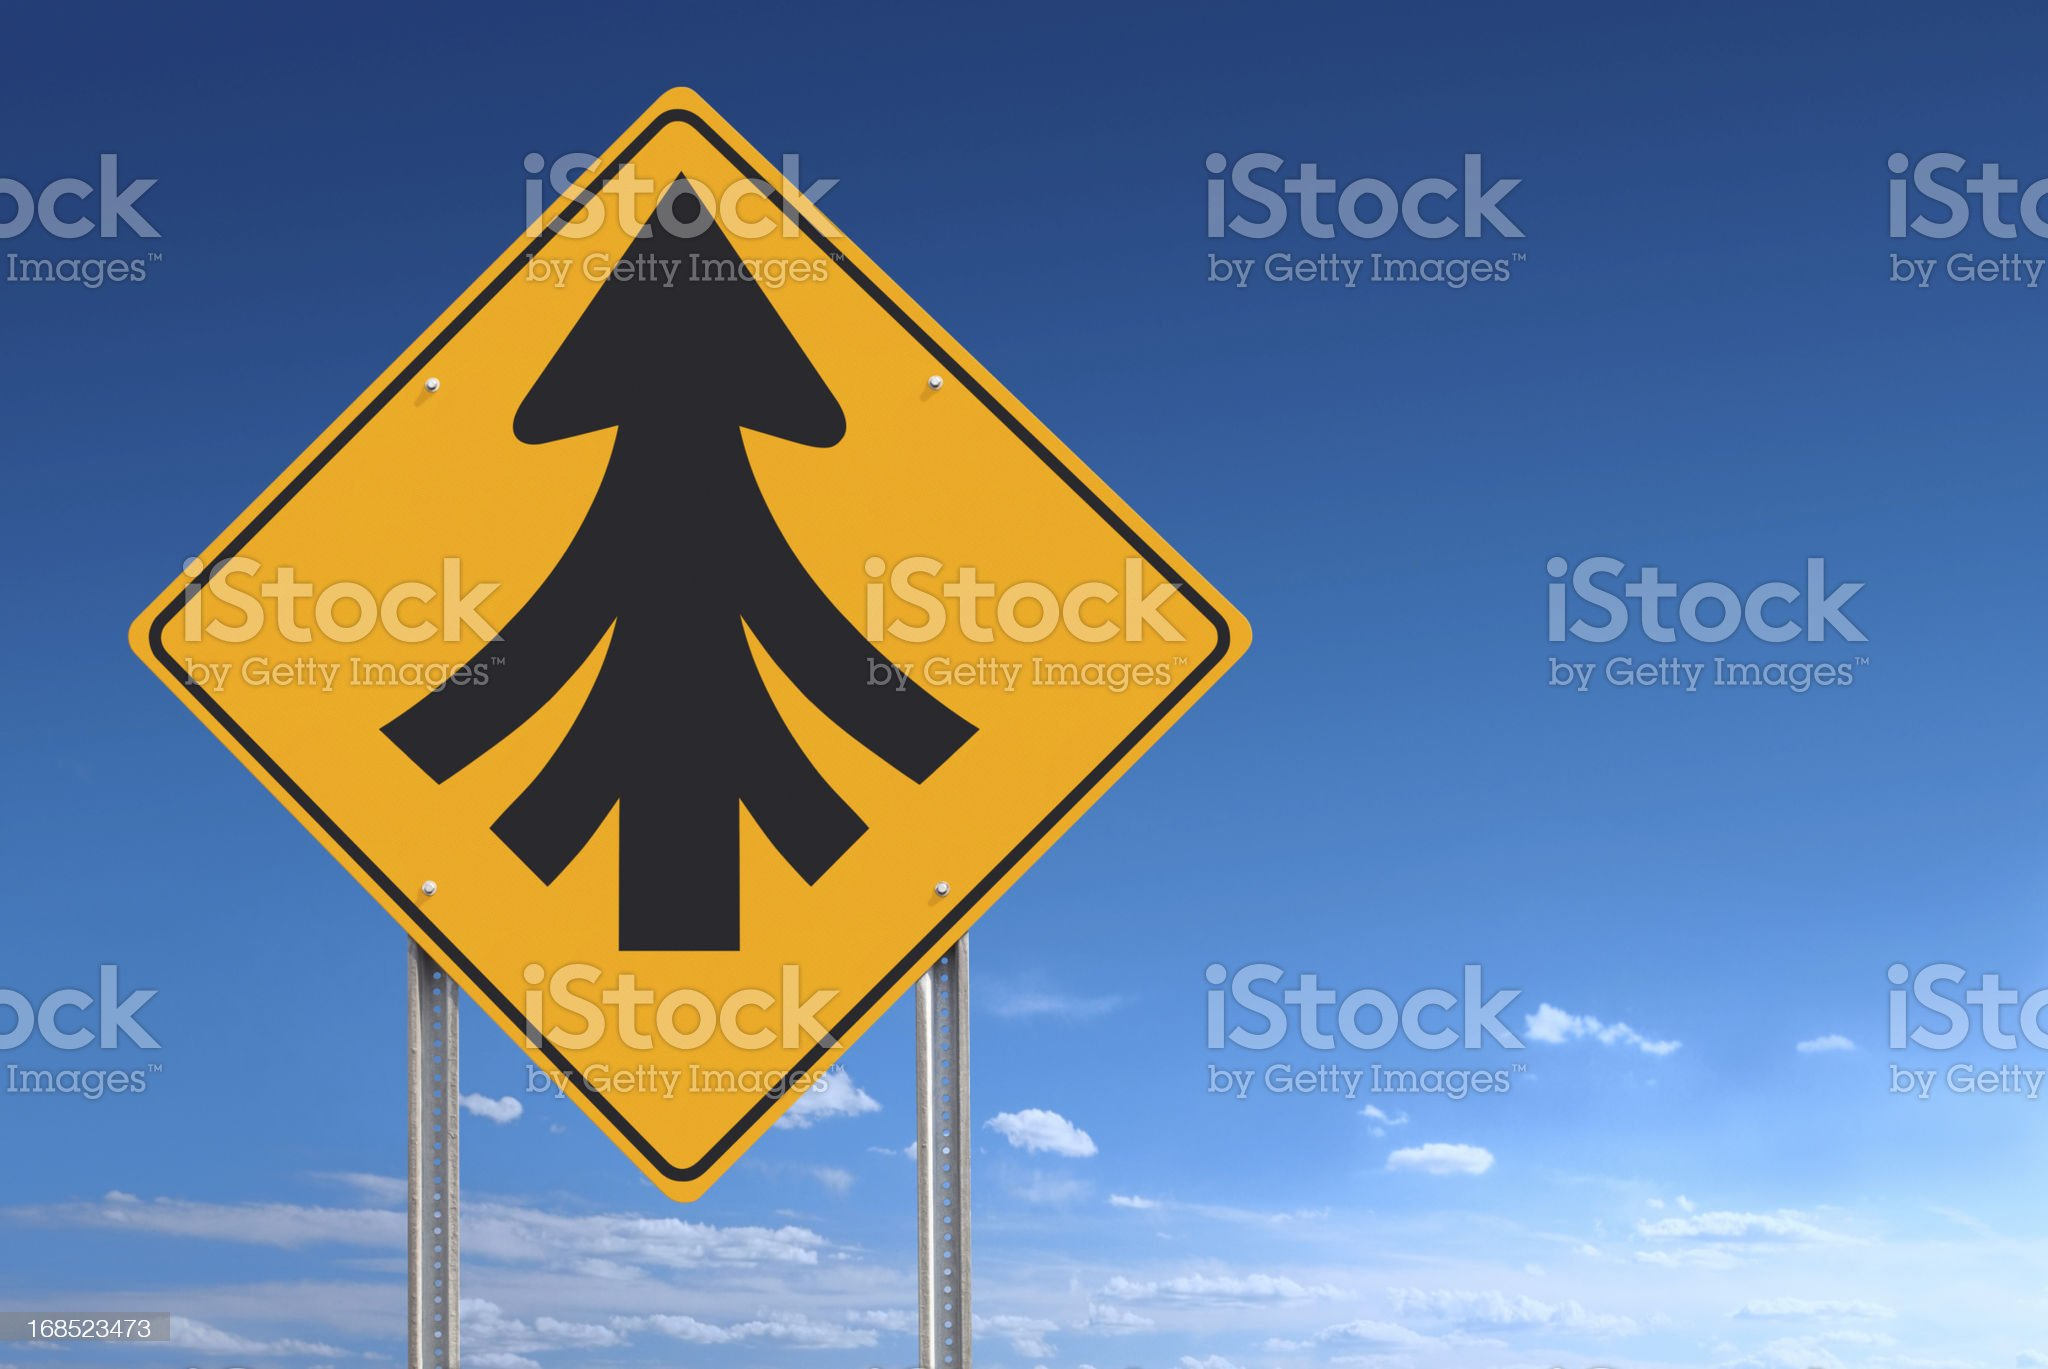 Convergence Ahead Merging Into Unity Road Sign on Sky Background royalty-free stock photo